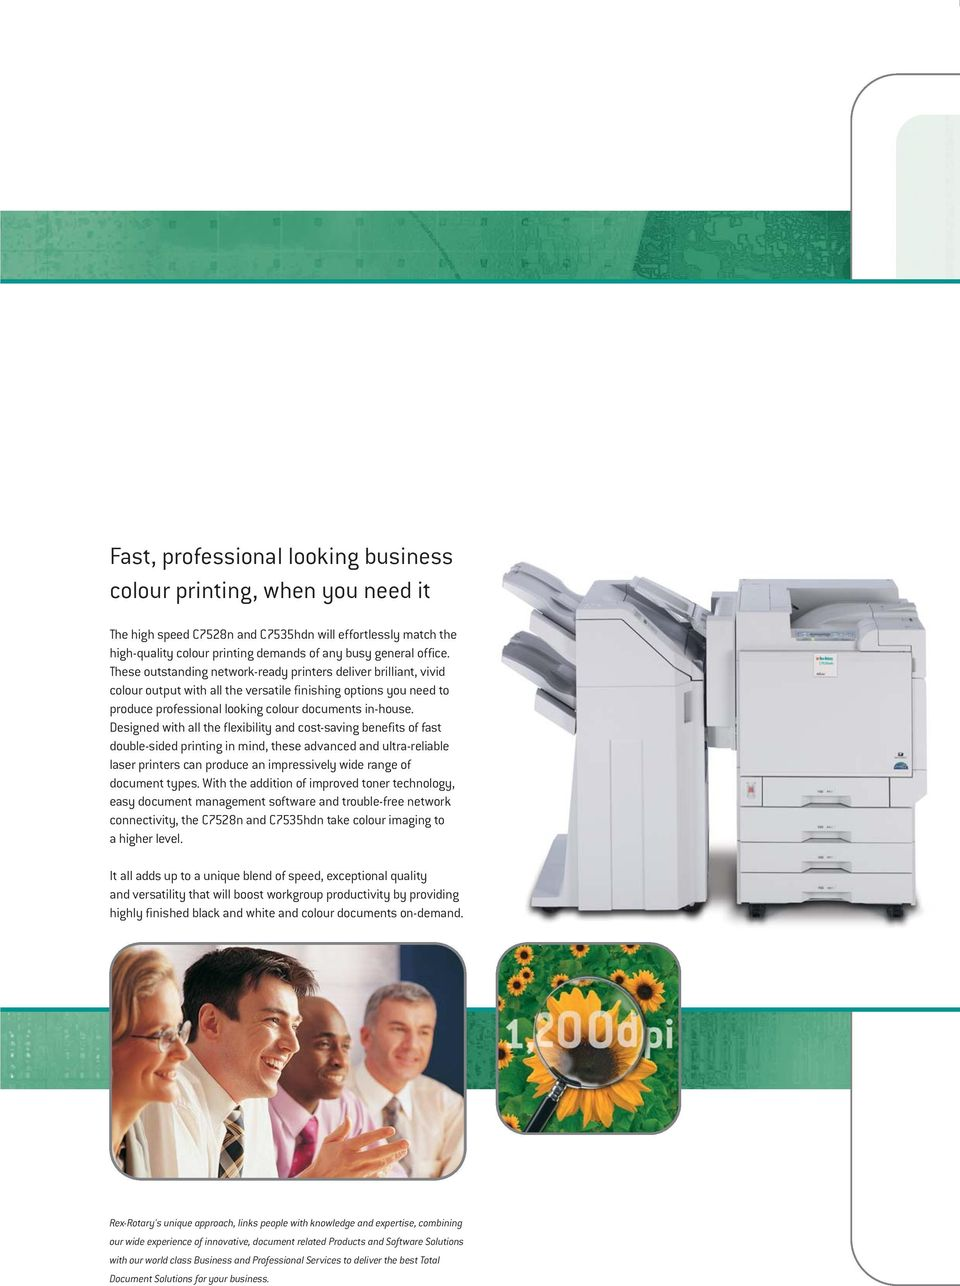 Designed with all the flexibility and cost-saving benefits of fast double-sided printing in mind, these advanced and ultra-reliable laser printers can produce an impressively wide range of document